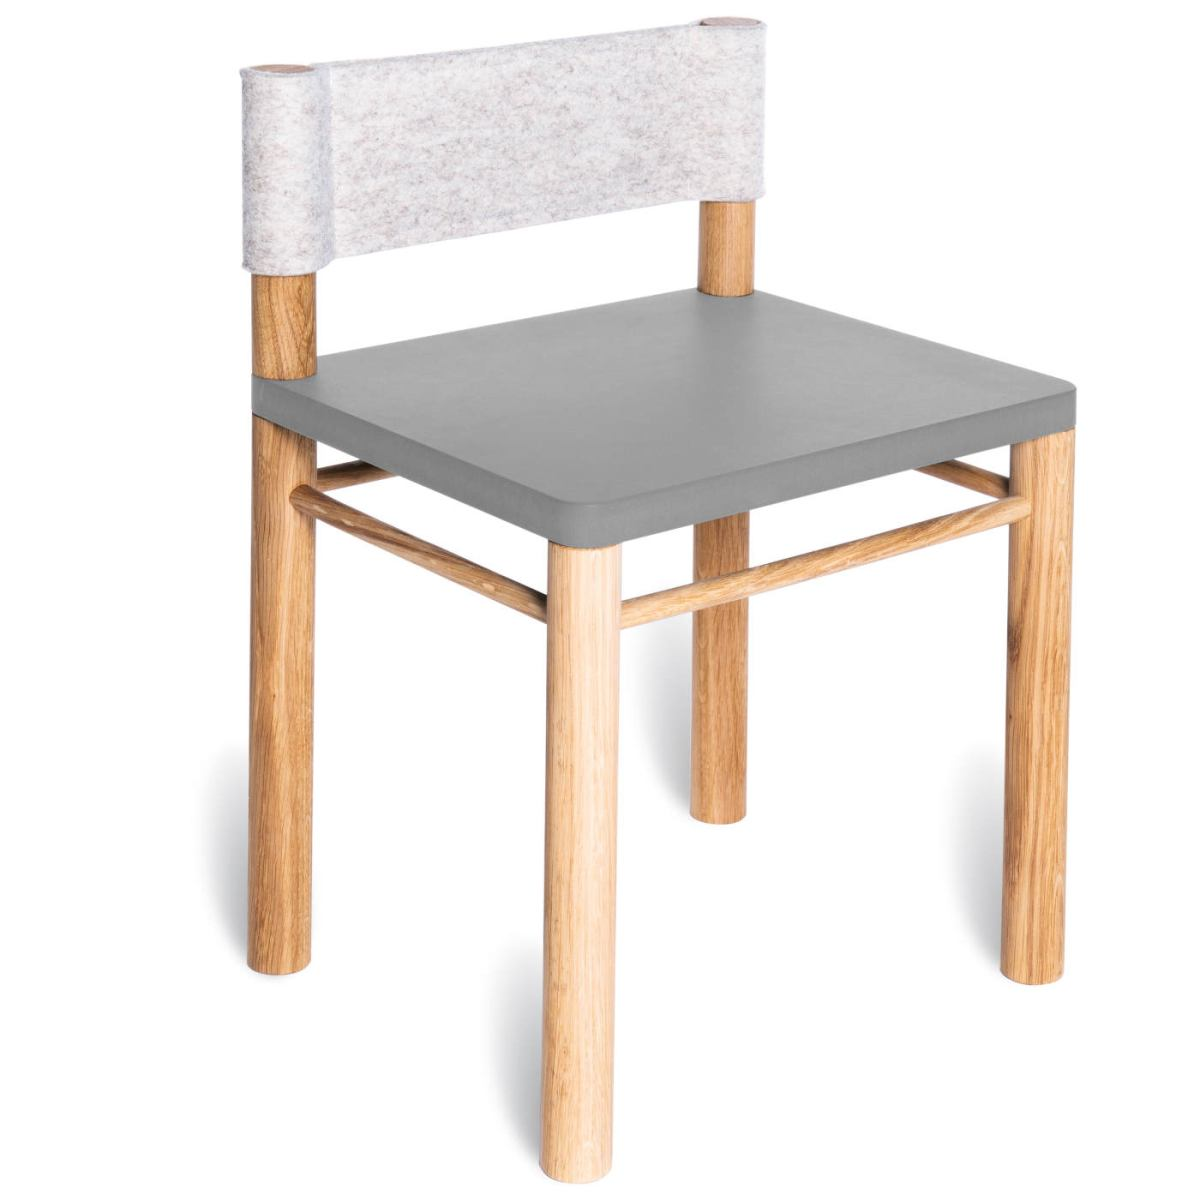 Grey version: Solid wood children's chair with wool felt backrest